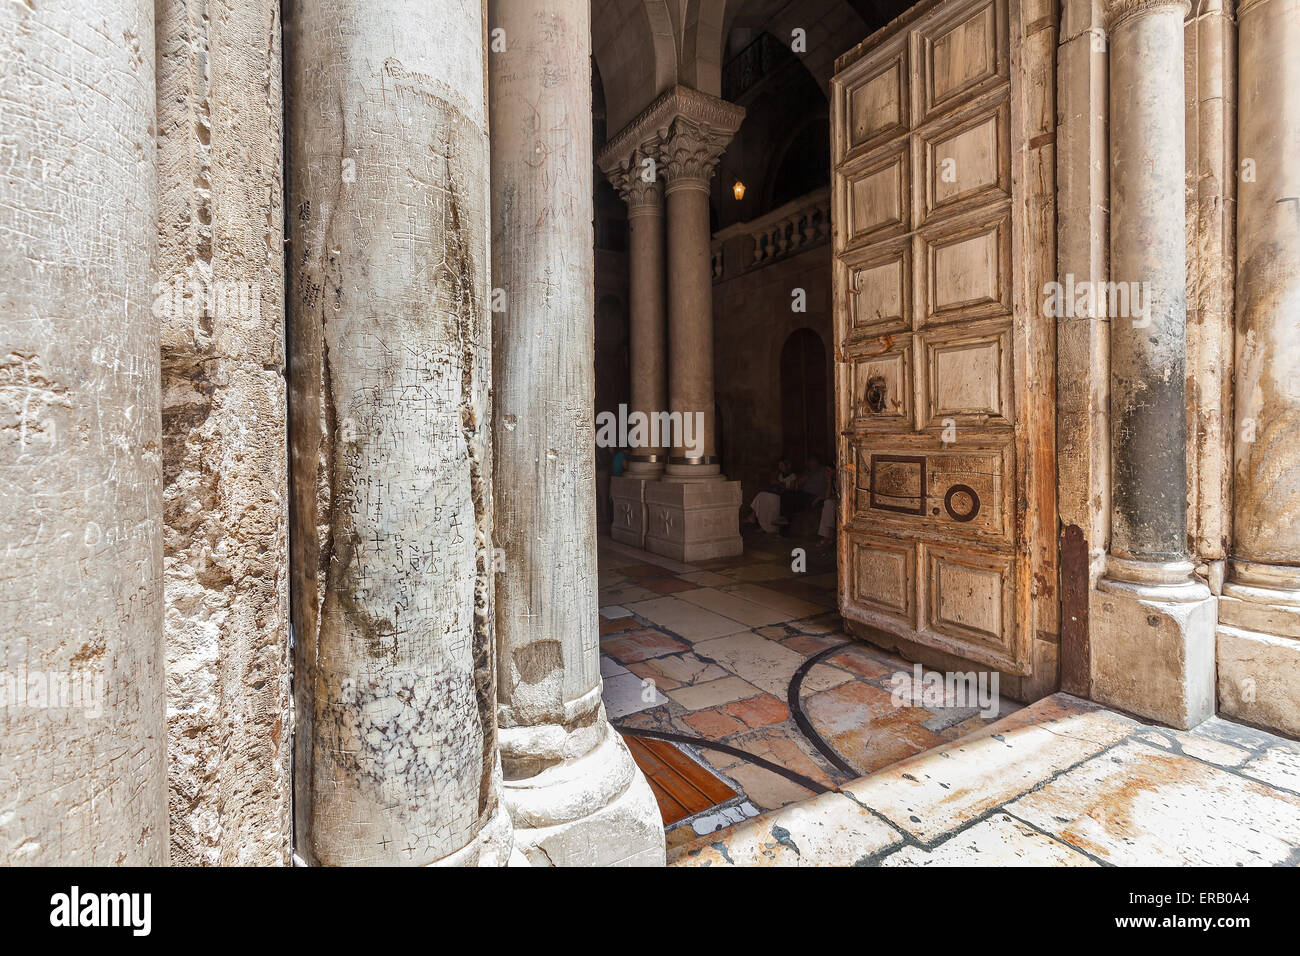 Marble pillars and old wooden door at the entrance to the Church of the Holy Sepulchre in Jerusalem, Israel. - Stock Image